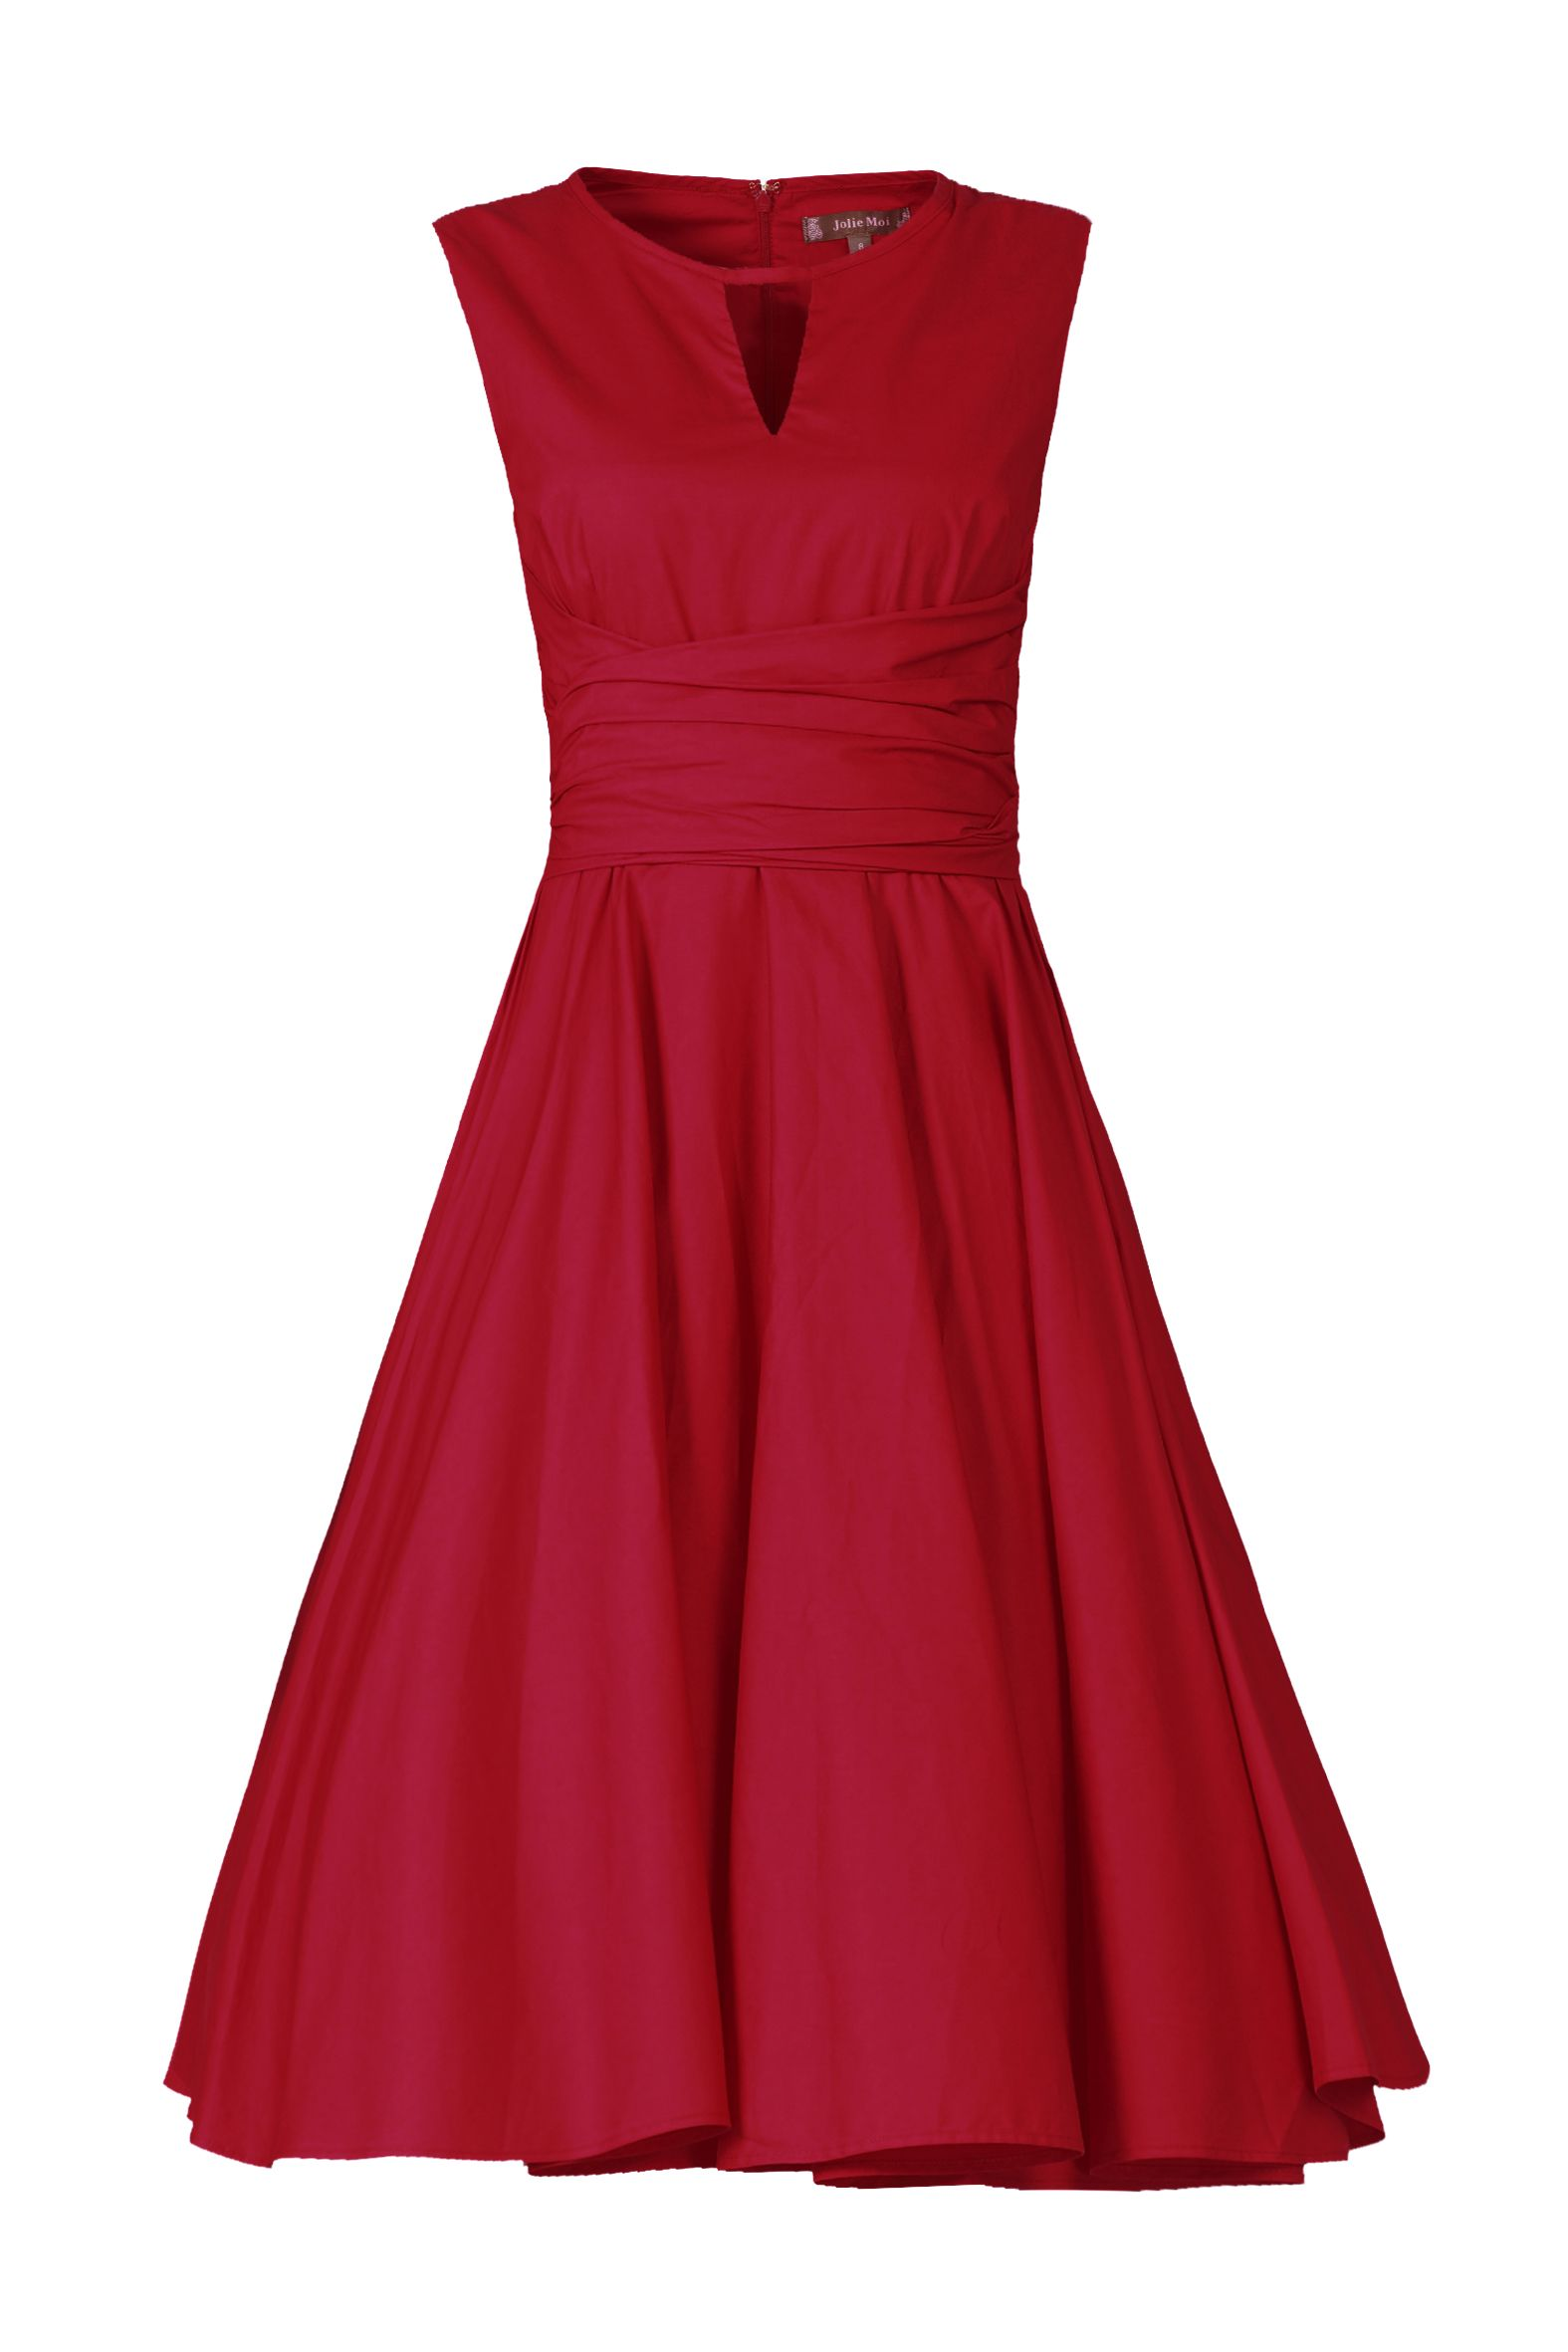 Jolie Moi Keyhole NeckLine 50s Dress, Red